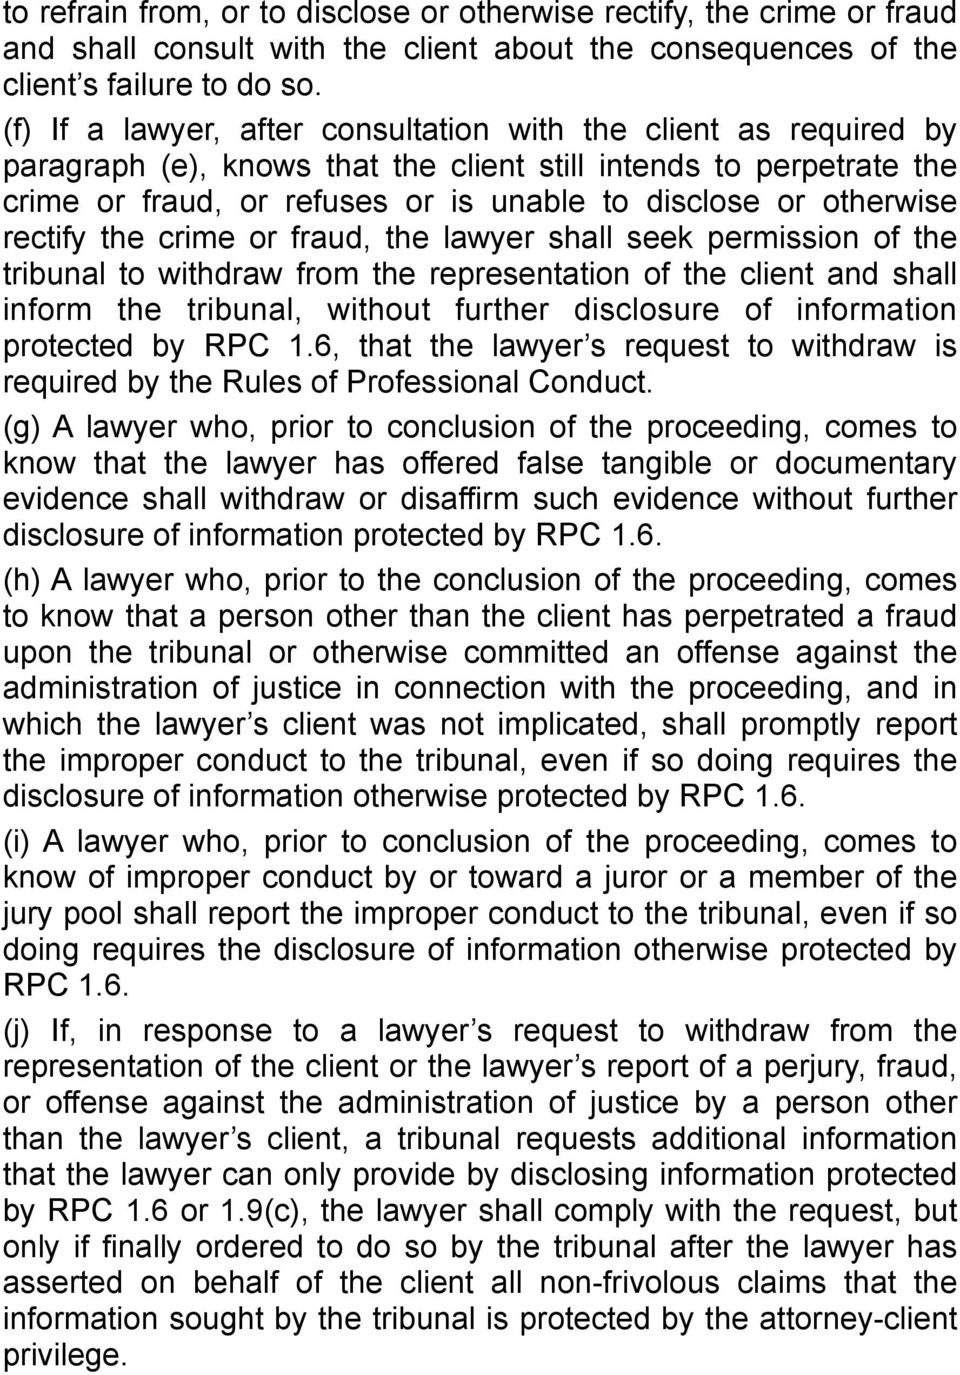 otherwise rectify the crime or fraud, the lawyer shall seek permission of the tribunal to withdraw from the representation of the client and shall inform the tribunal, without further disclosure of